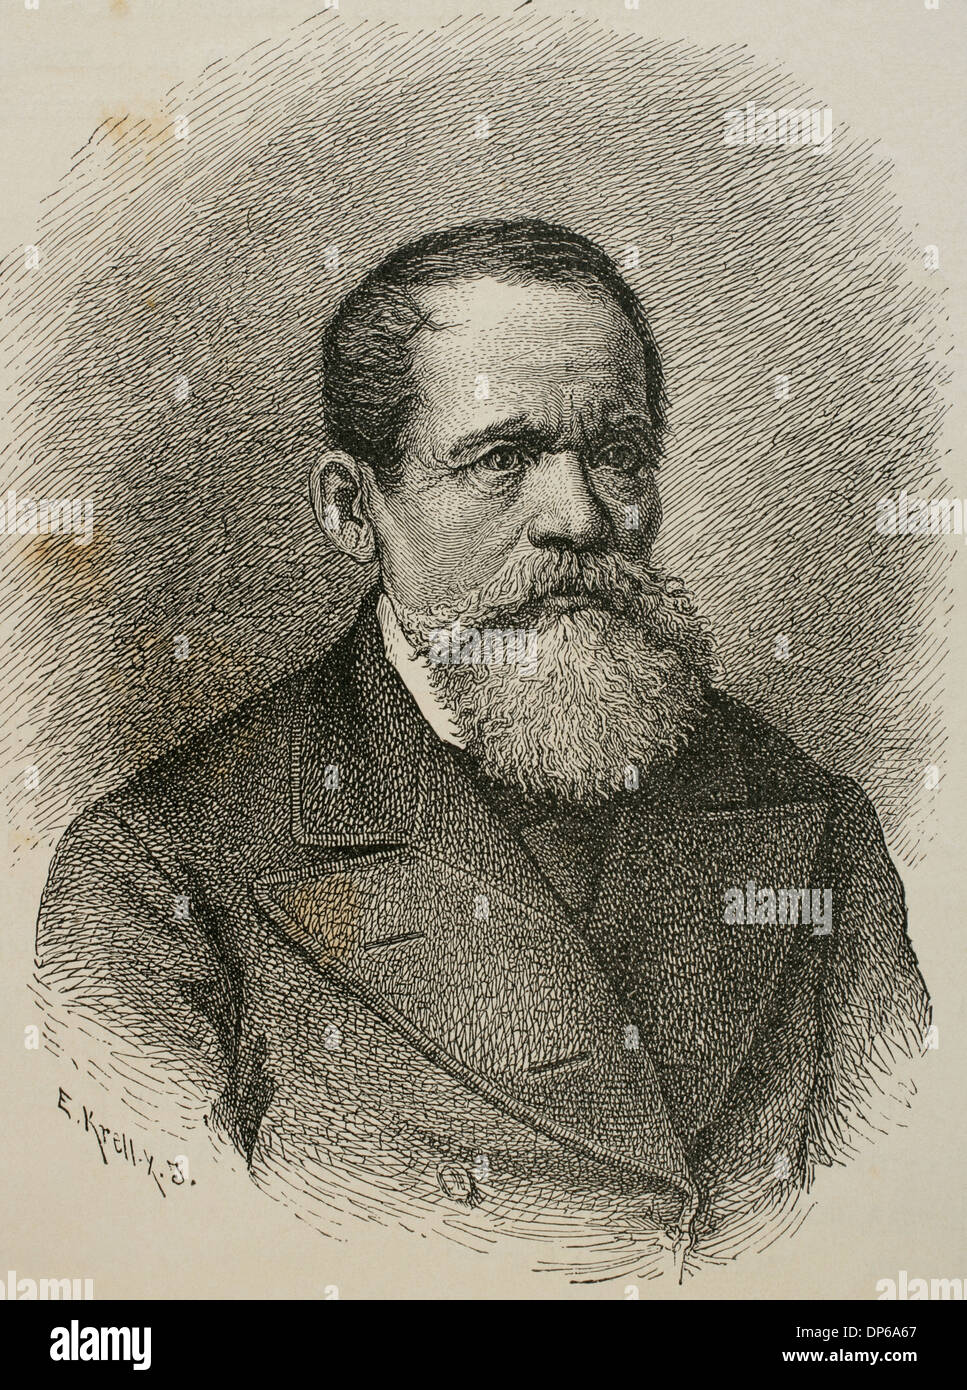 Heinrich Laube (1806-1884). German writer and theater director. Engraving. - Stock Image